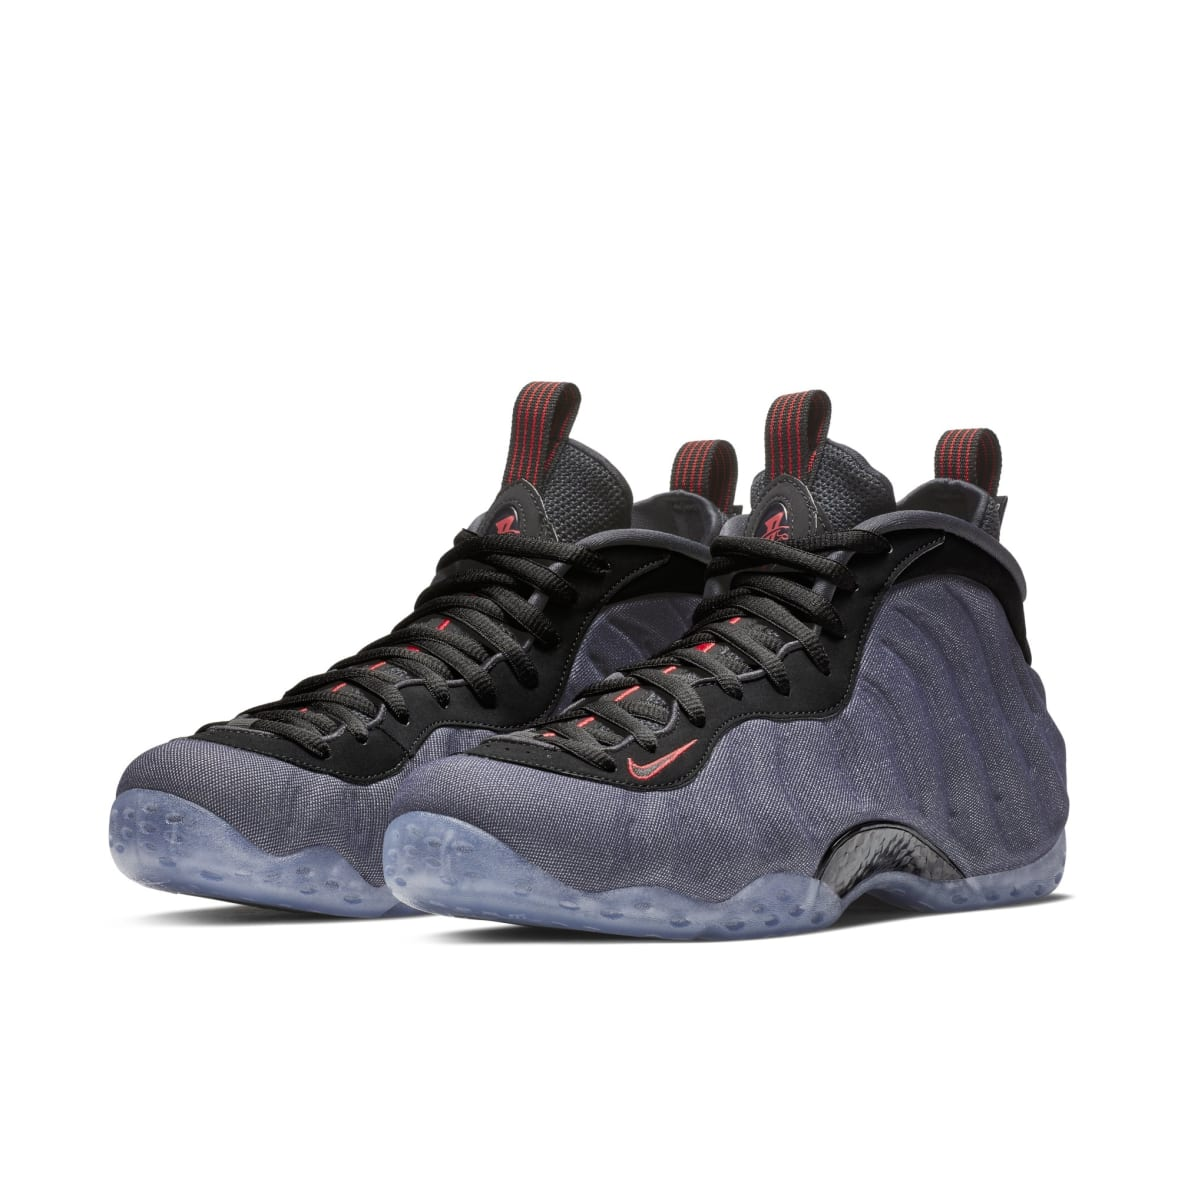 Nike Air Foamposite One Denim Release Date 314996-404  6016a86ca